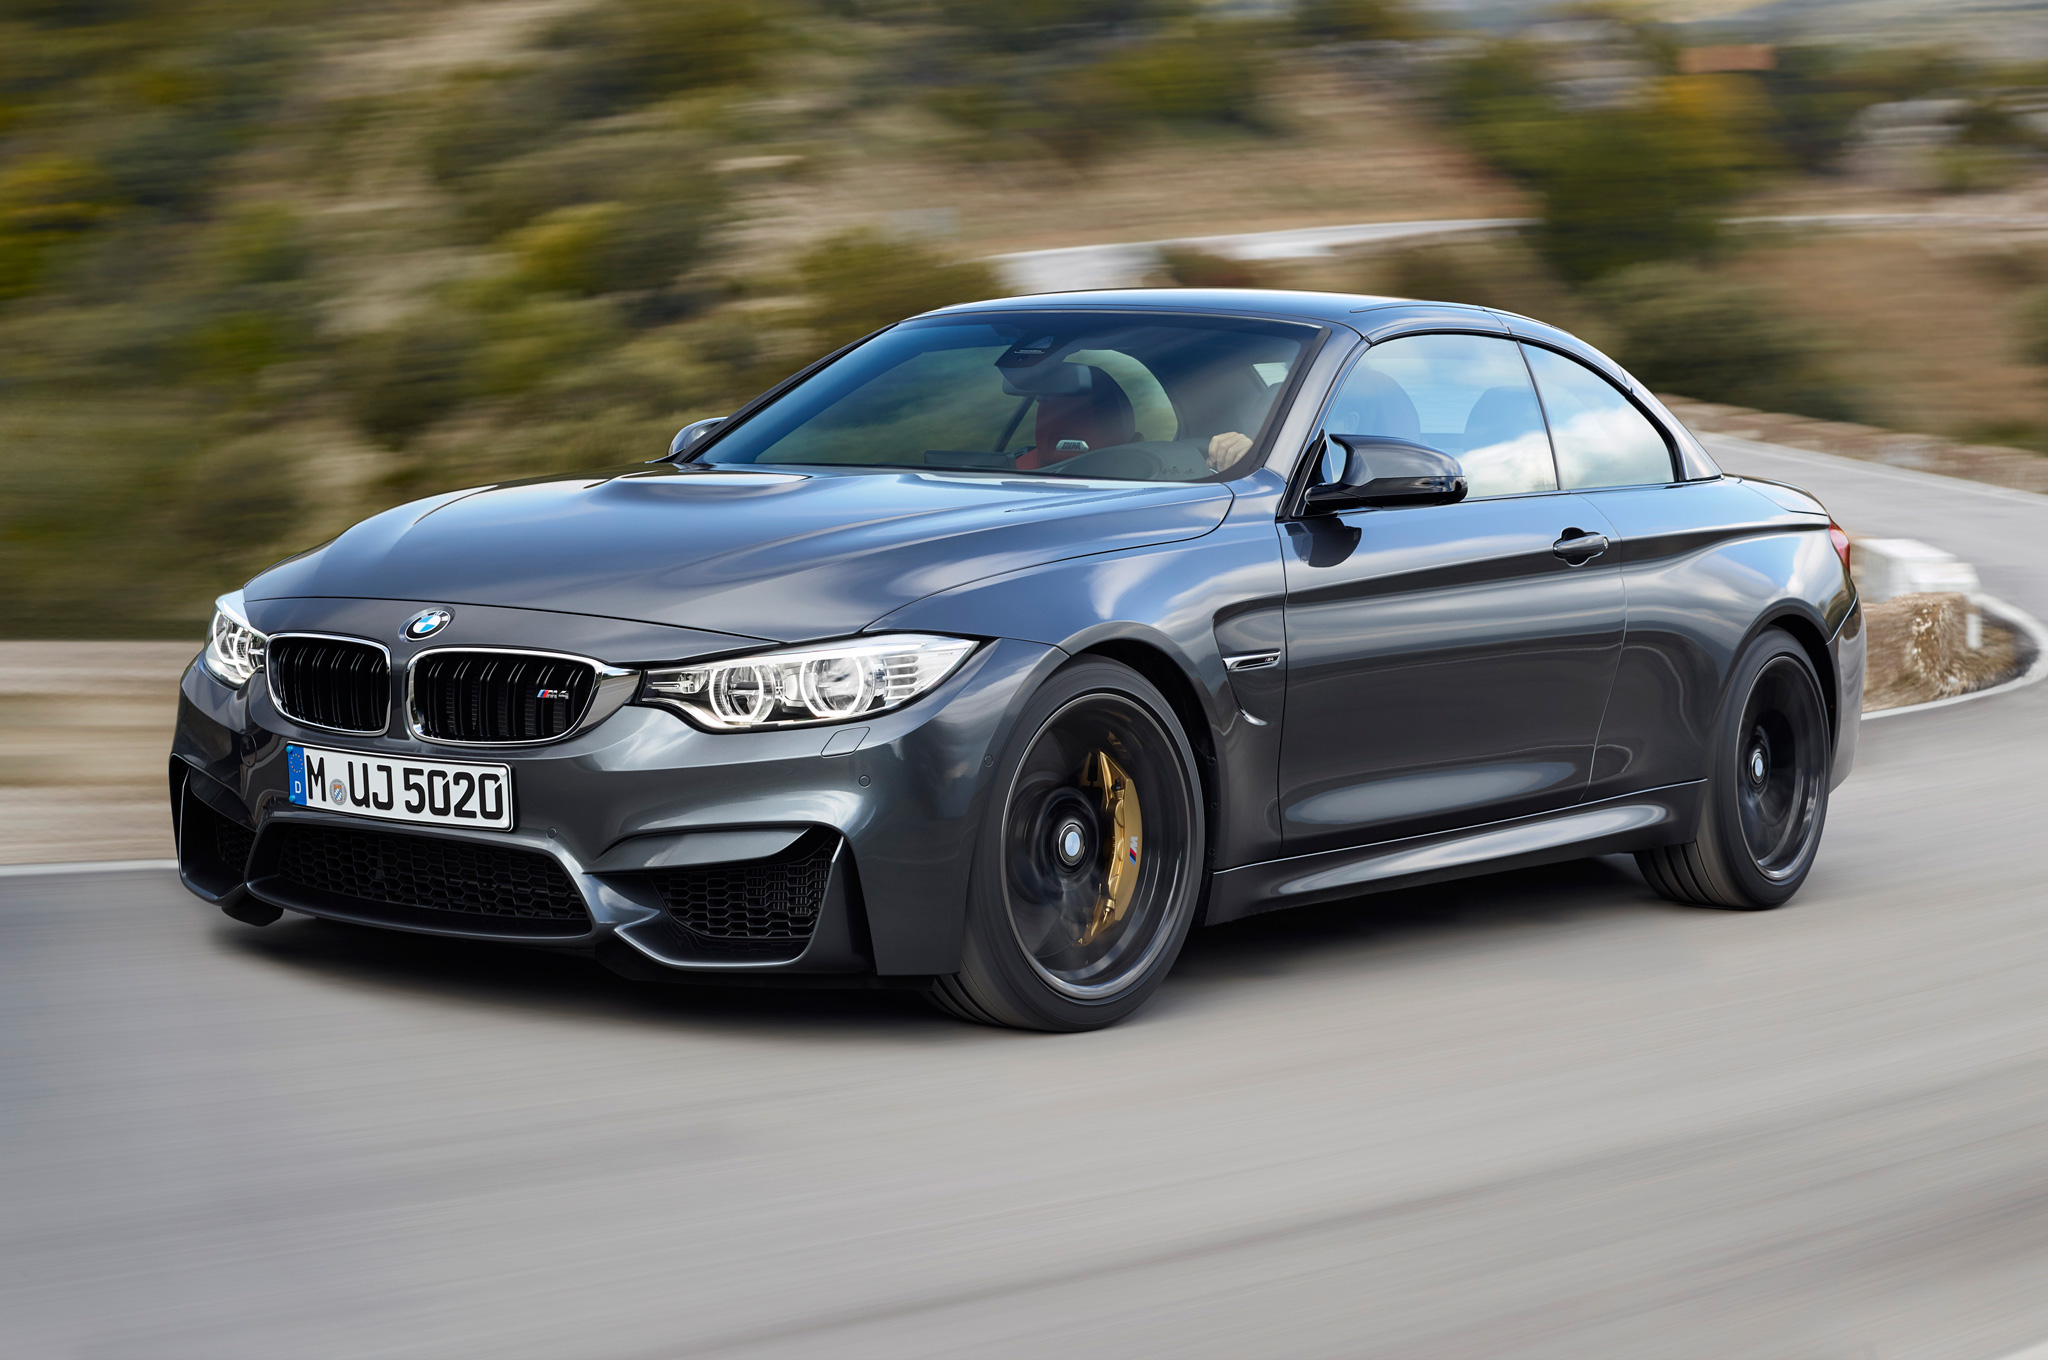 2015 Bmw M4 Convertible Road Performance (View 22 of 50)